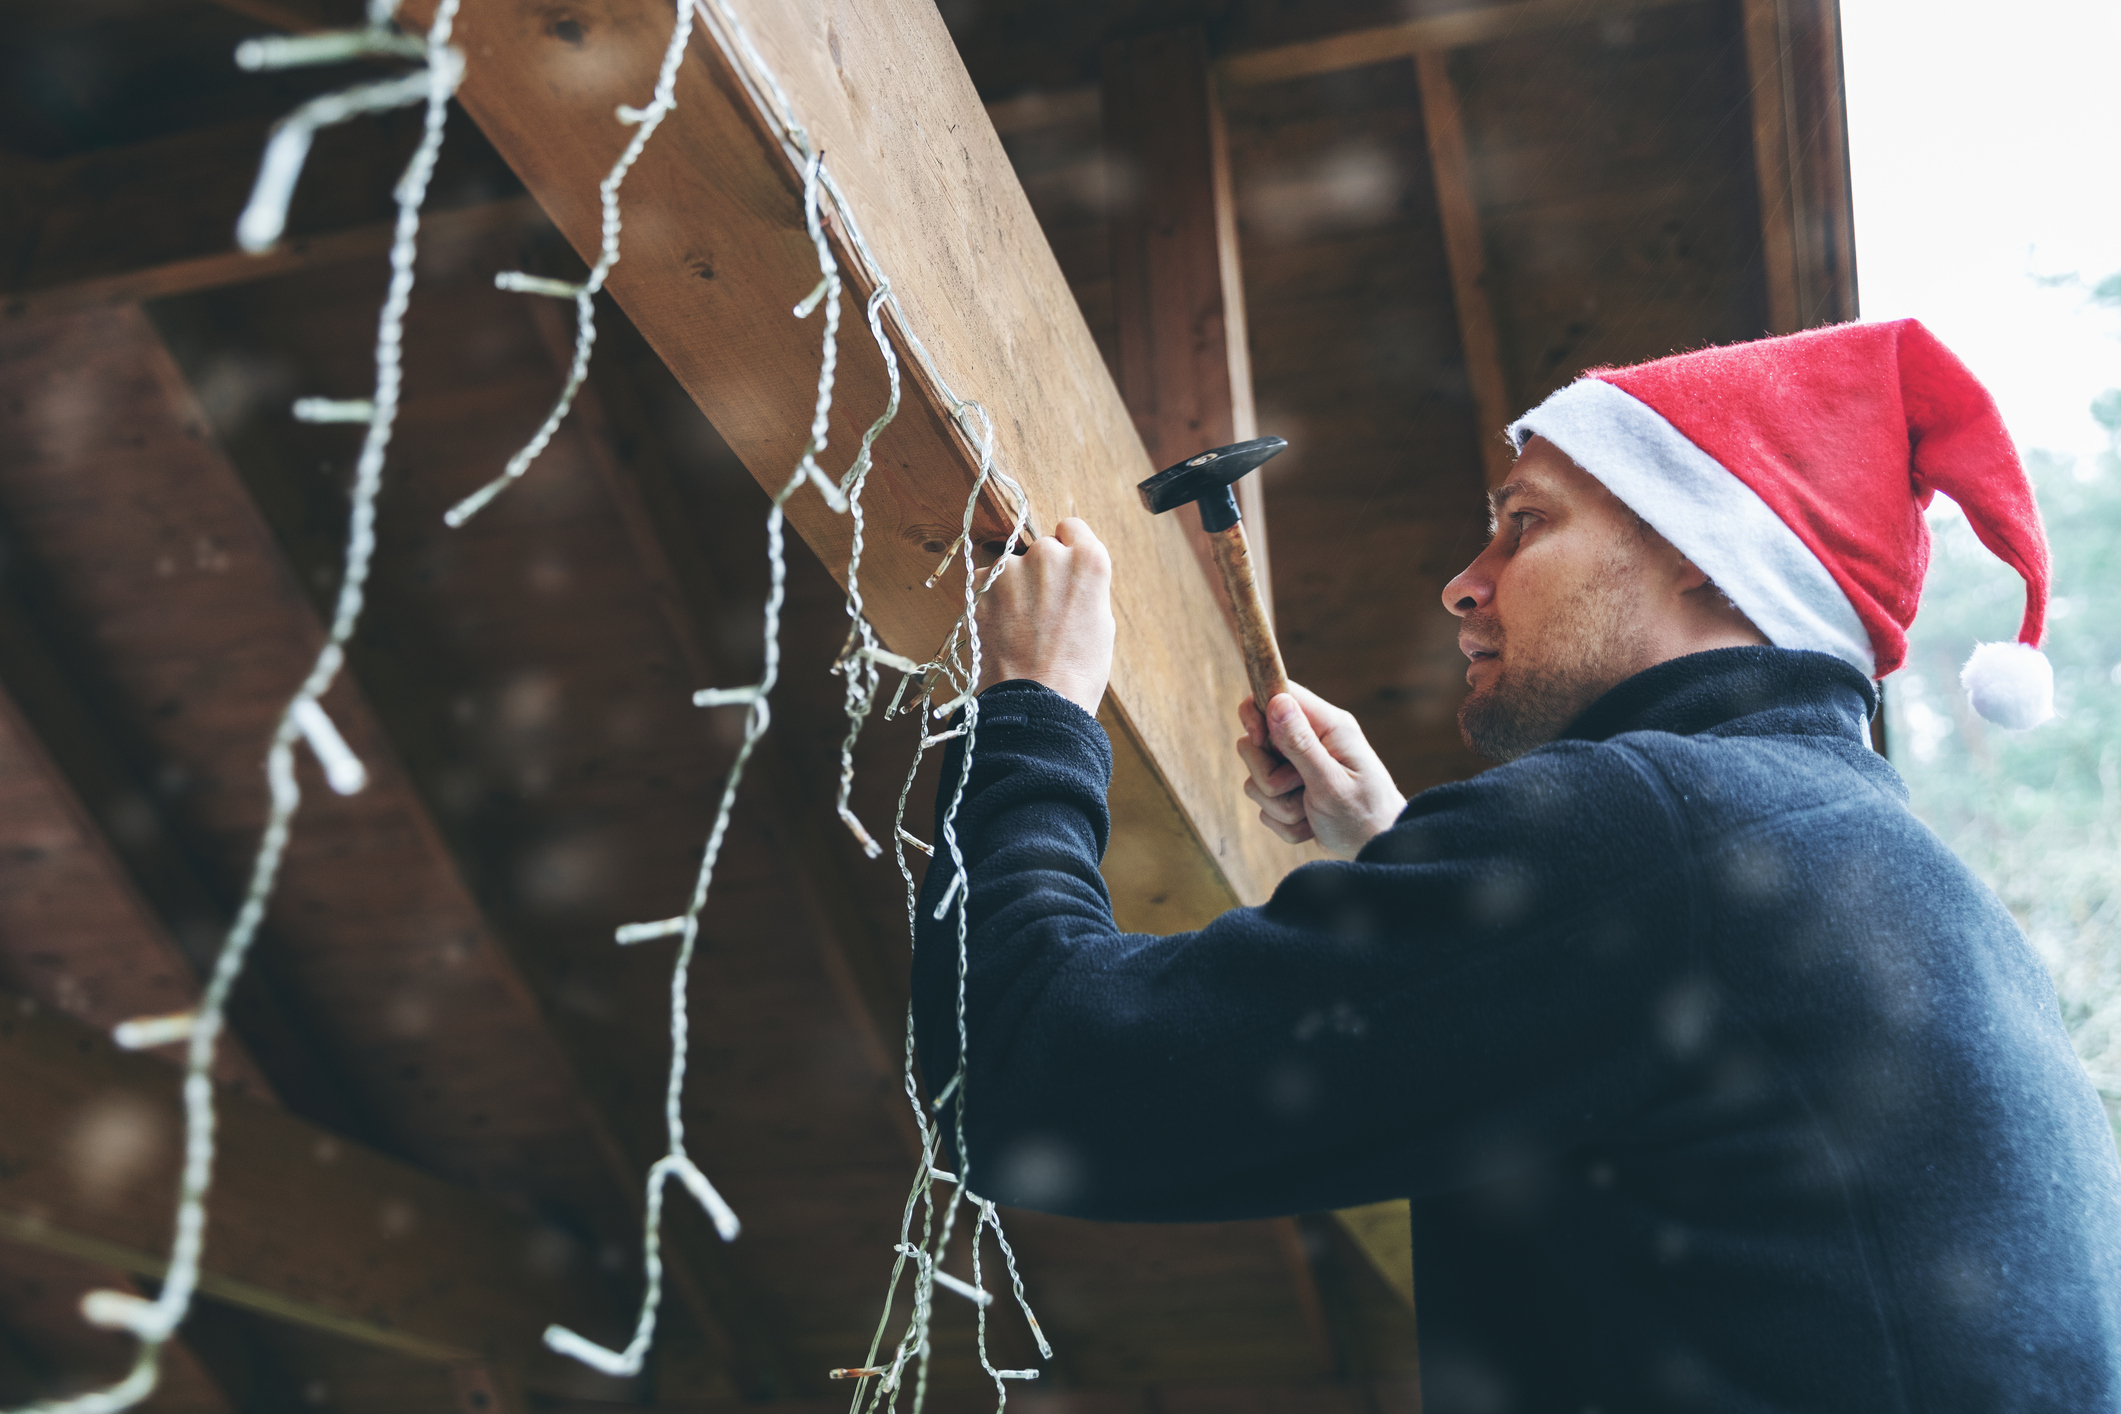 How to Avoid These Common Holiday Hazards